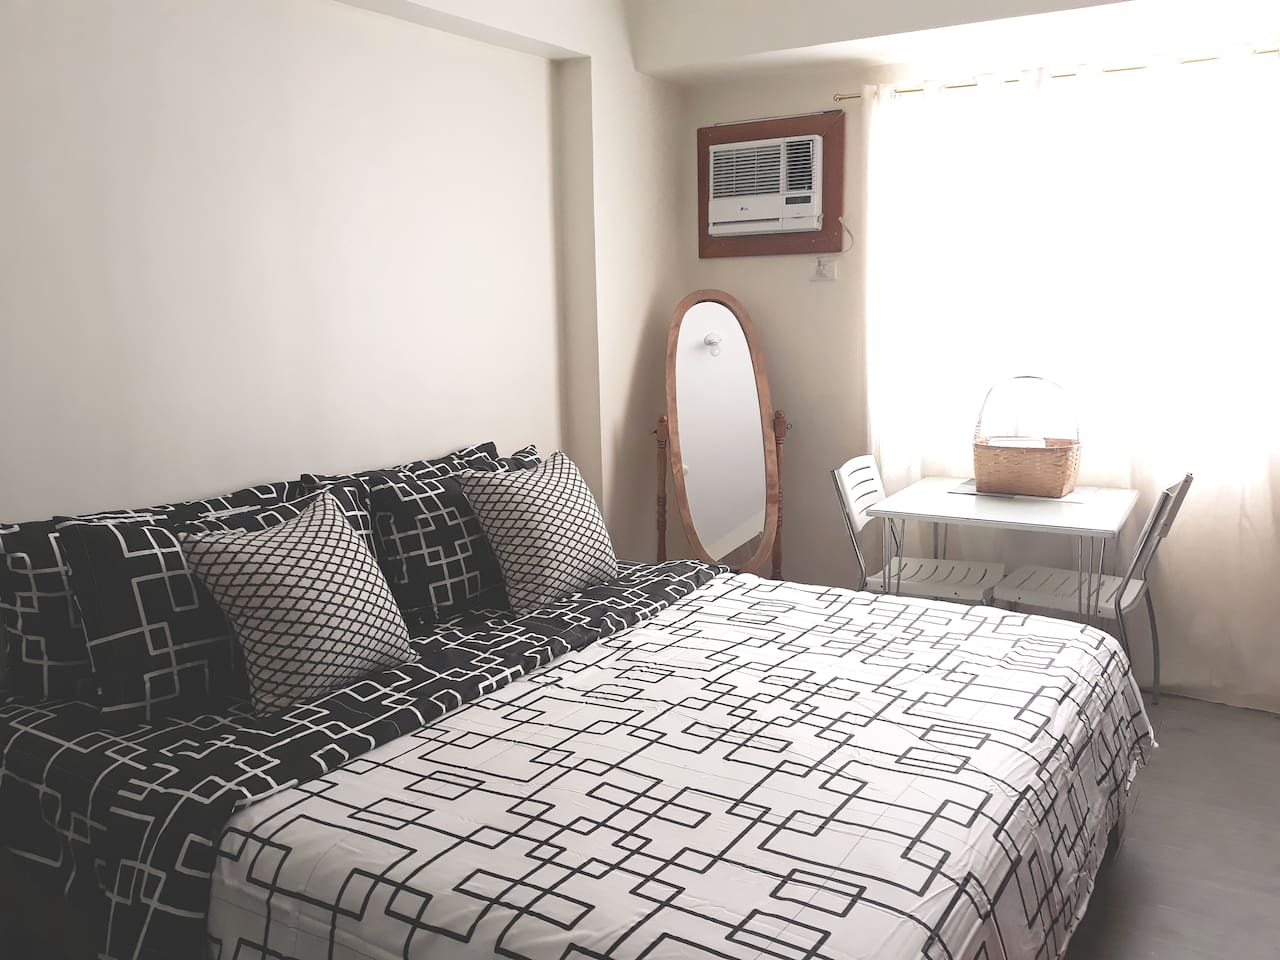 Black & White look for king size bed, 4 pillows, 2 shams, bed cover and comforter  ( Secondary set of sheets are provided for 30 day booking )